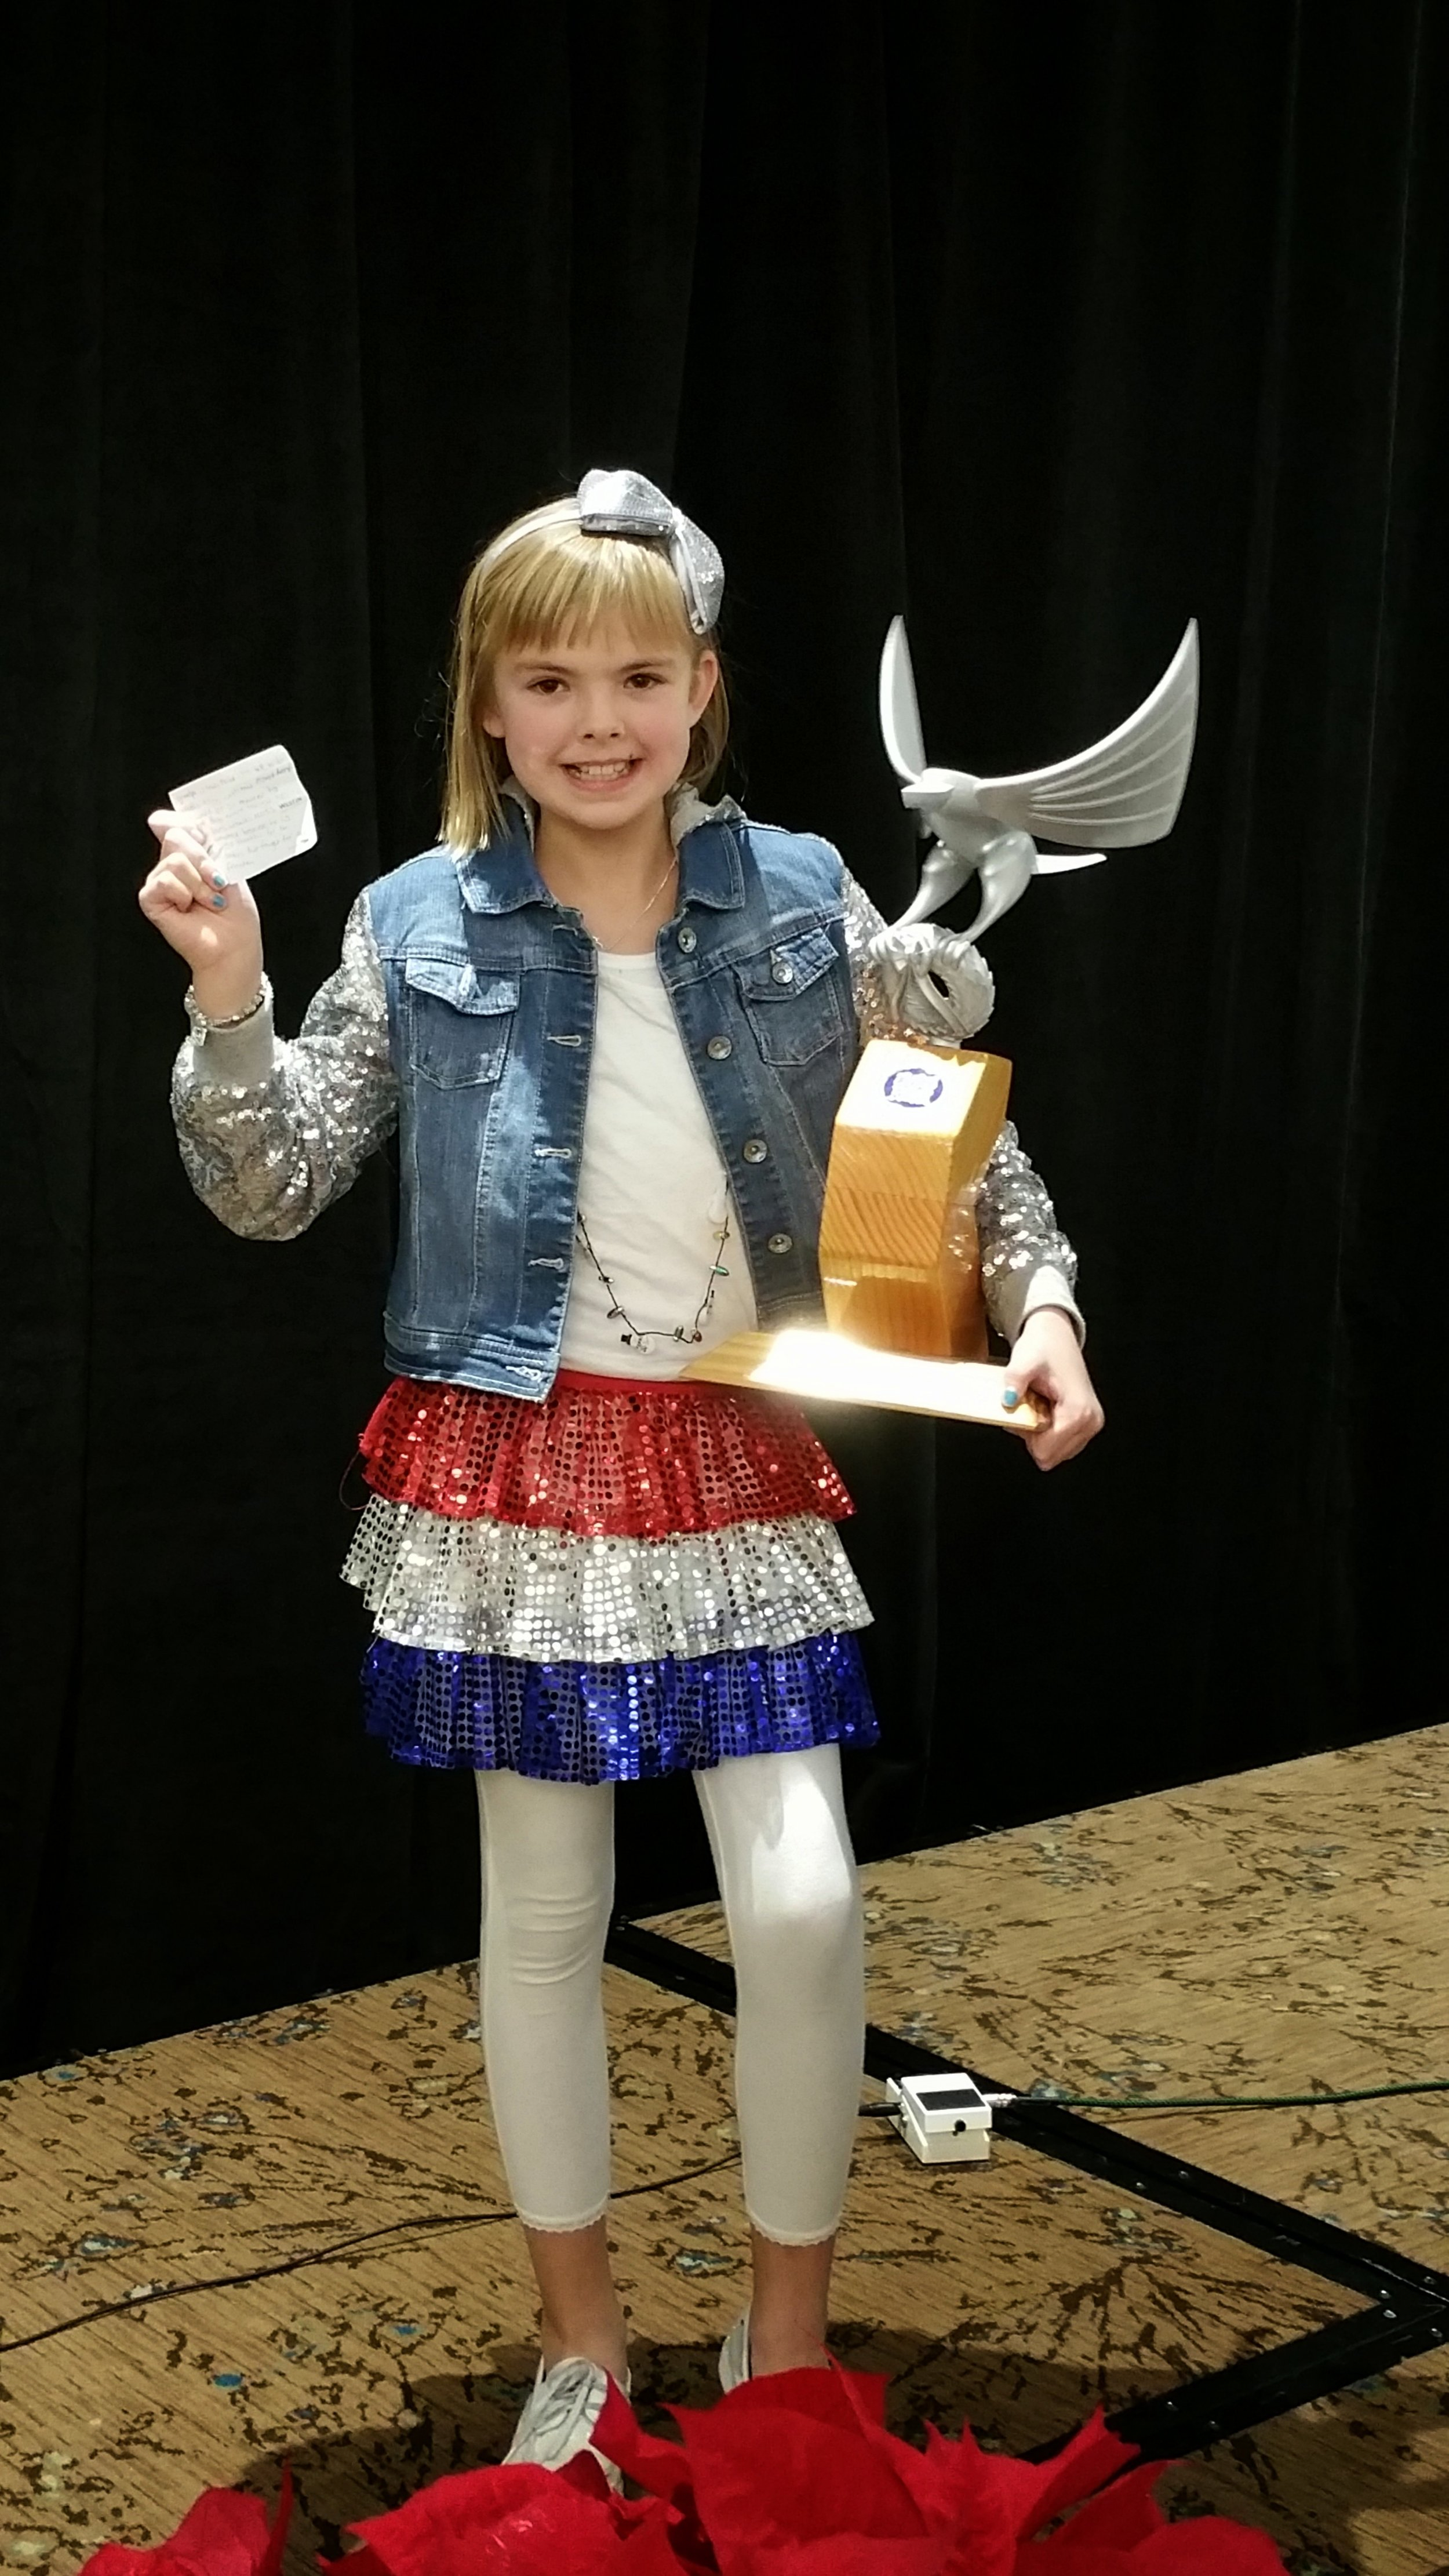 Ella is seen here in 2014 after accepting the inaugural Wreaths Across America/James Prout Spirit of Giving Award on behalf of her grandfather, Bob Baylor. He passed in 2015 and Ella continues to honor his memory.